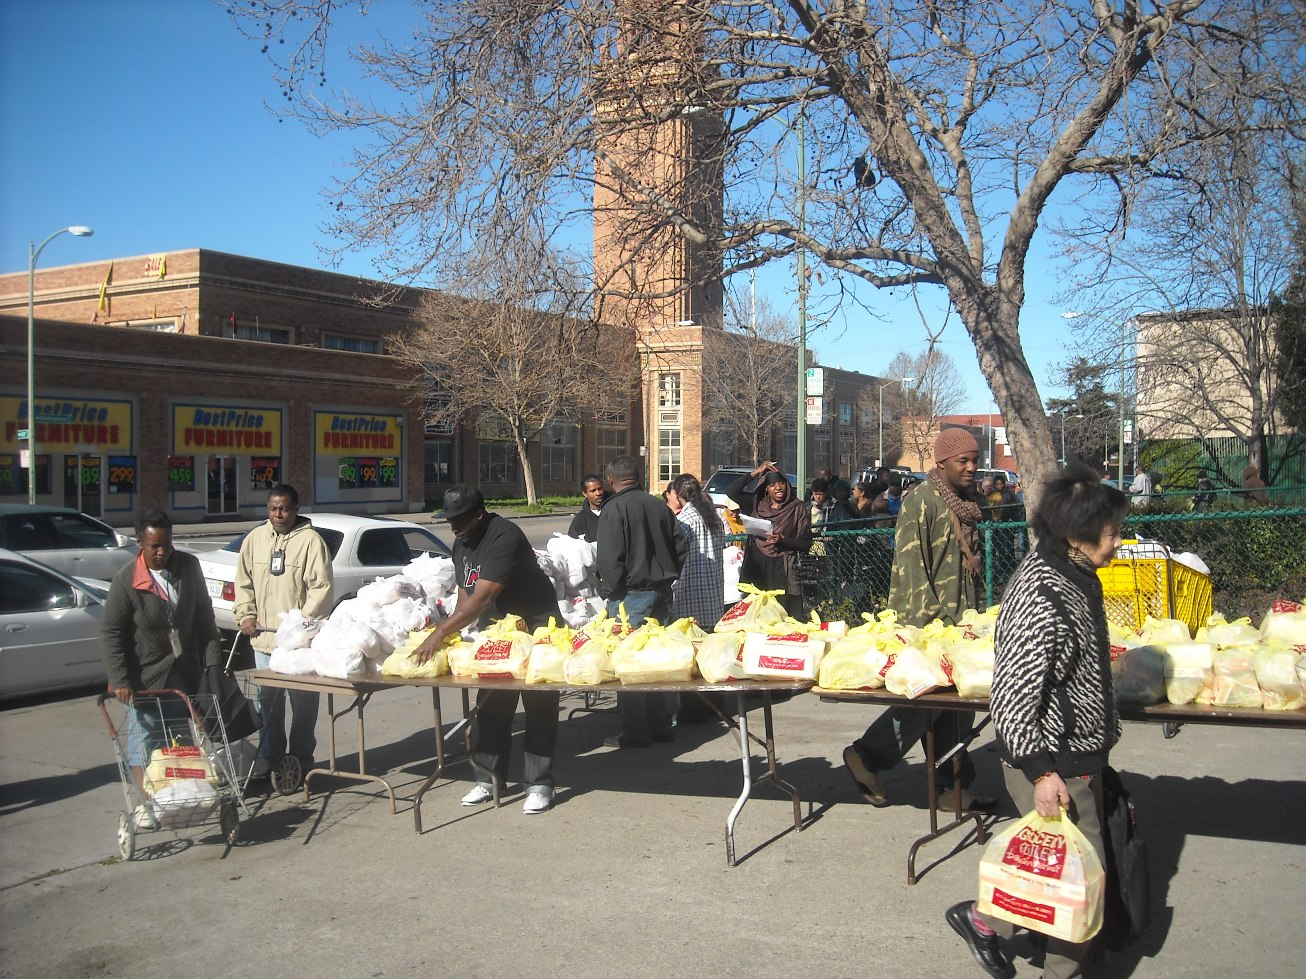 Distributing groceries